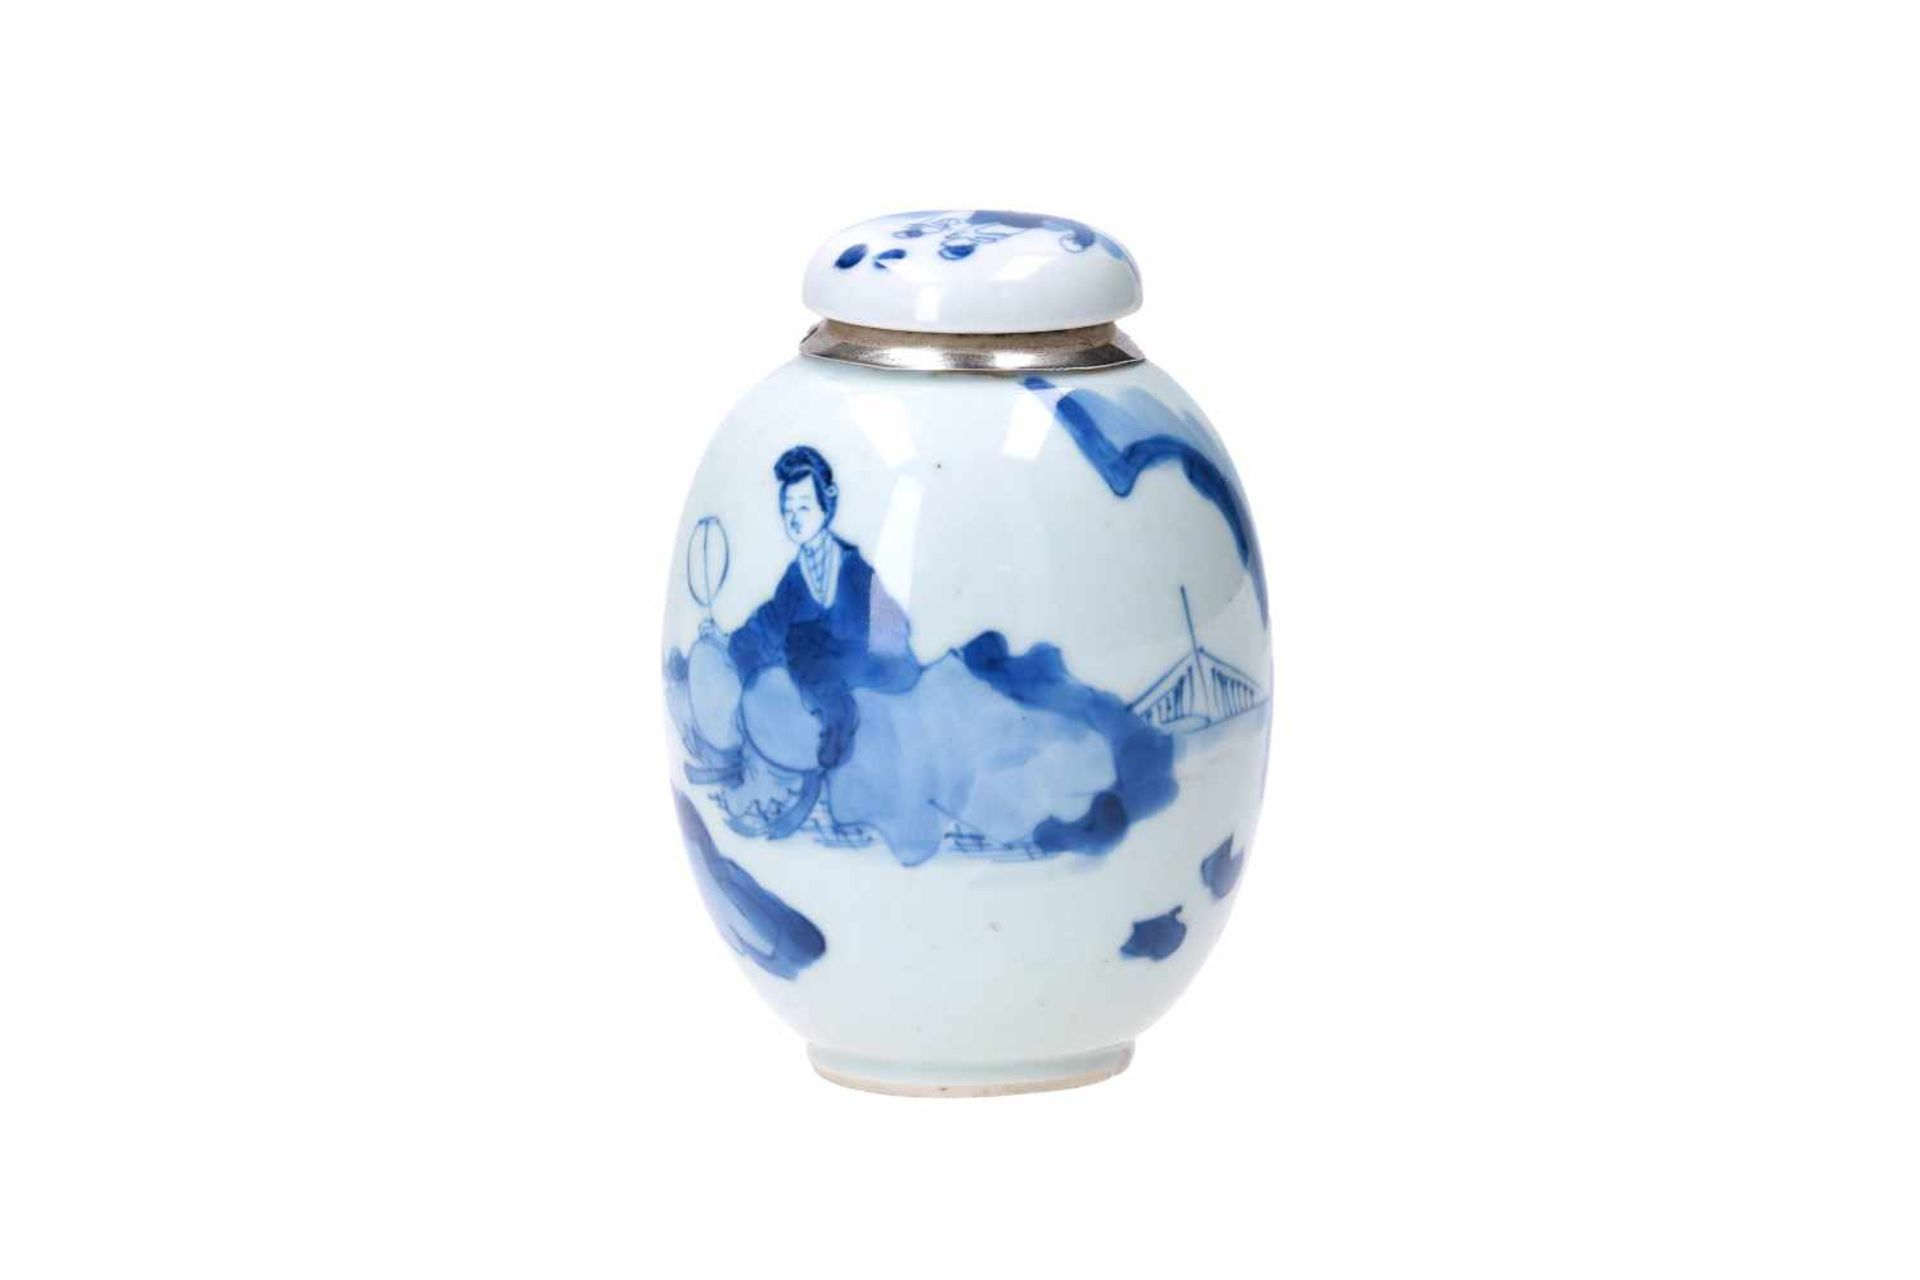 A blue and white porcelain lidded jar with later Dutch silver mounting, decorated with figures in - Bild 2 aus 11